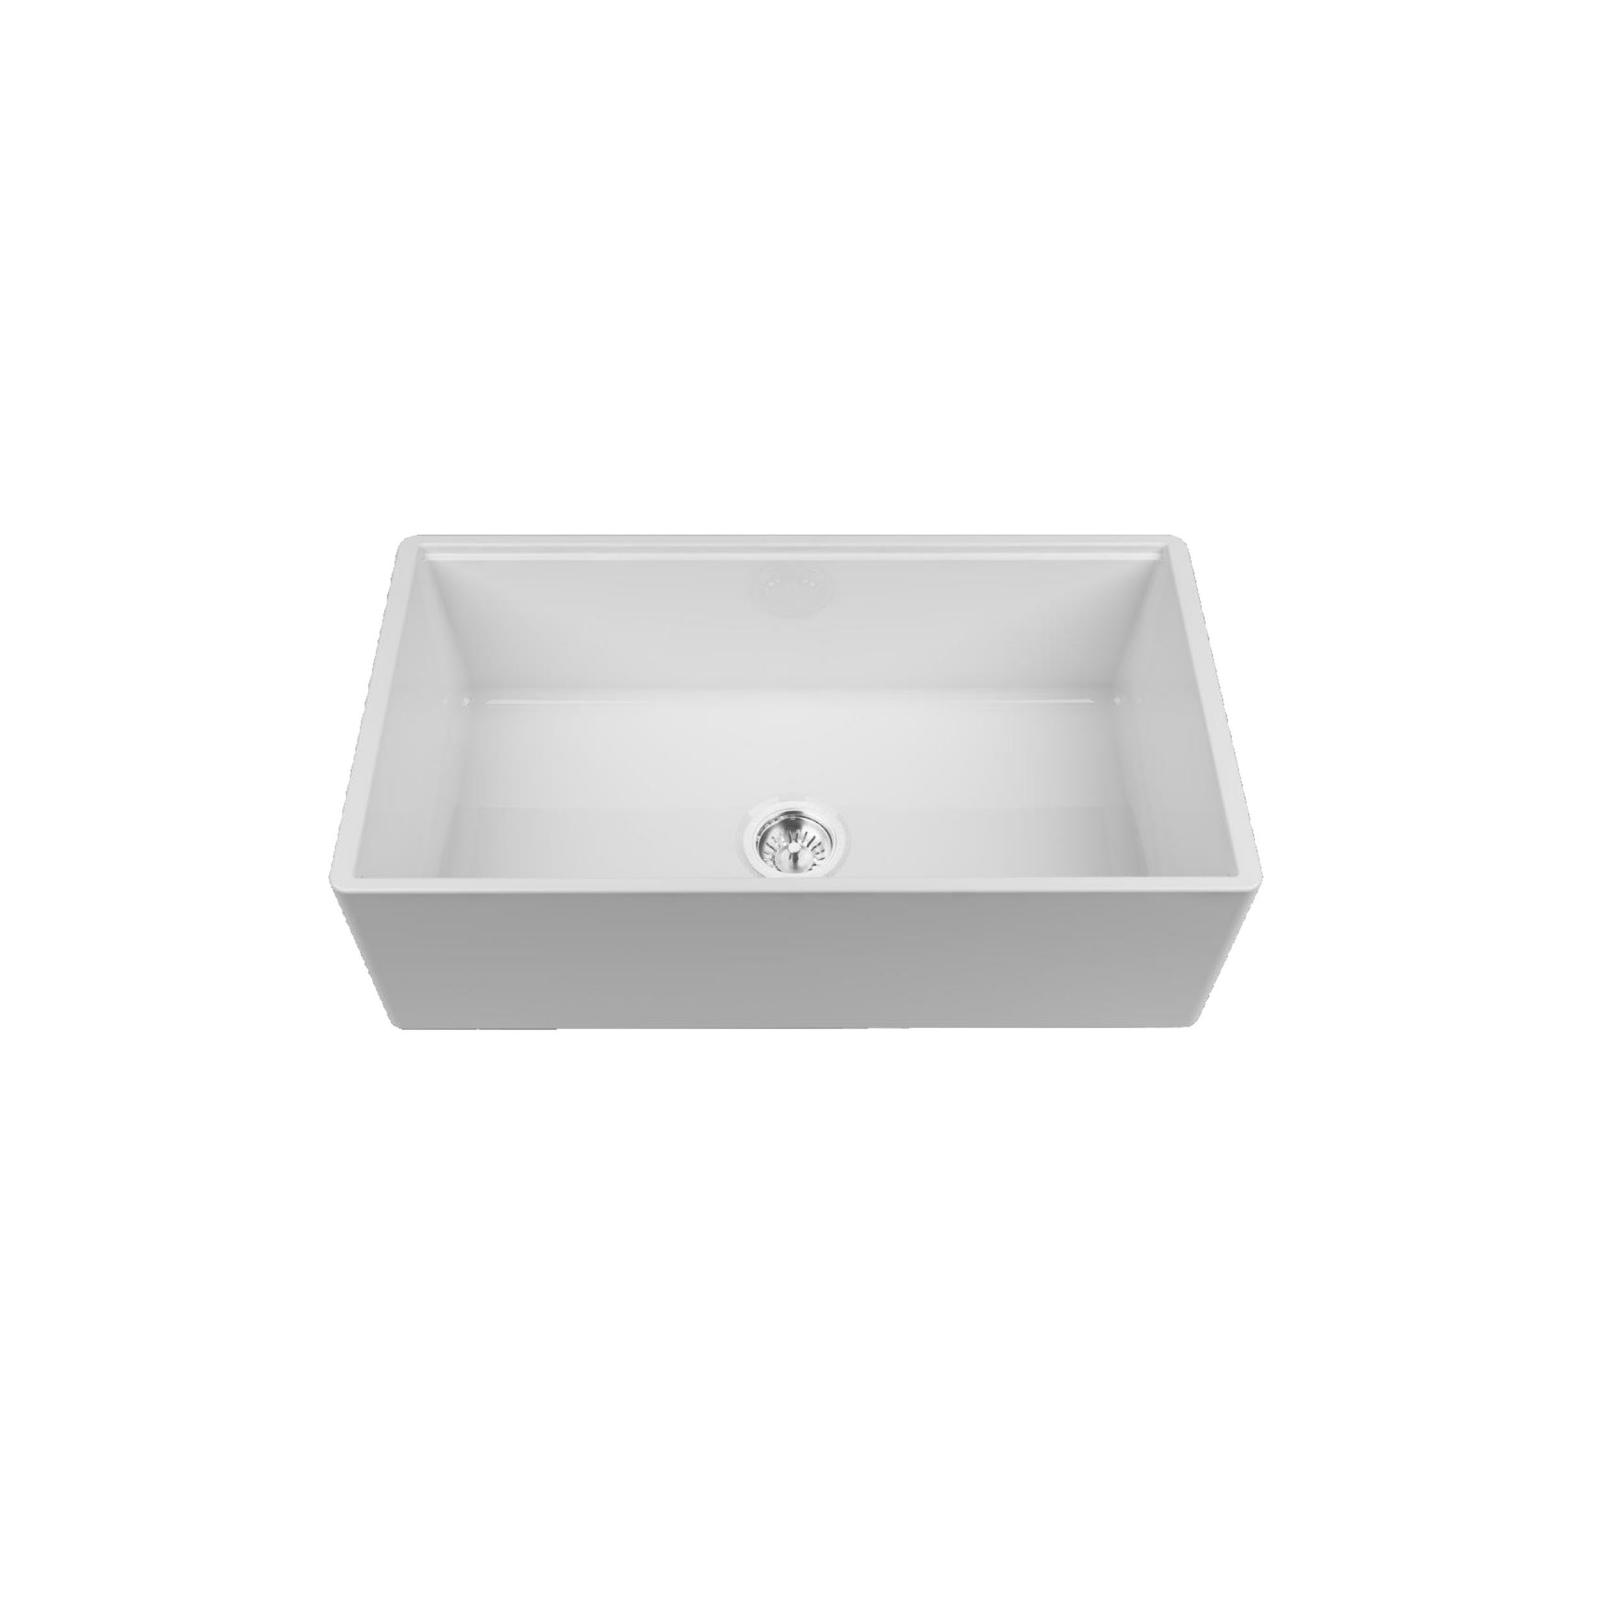 High-quality sink Louis Le Grand III - single bowl, ceramic - 2